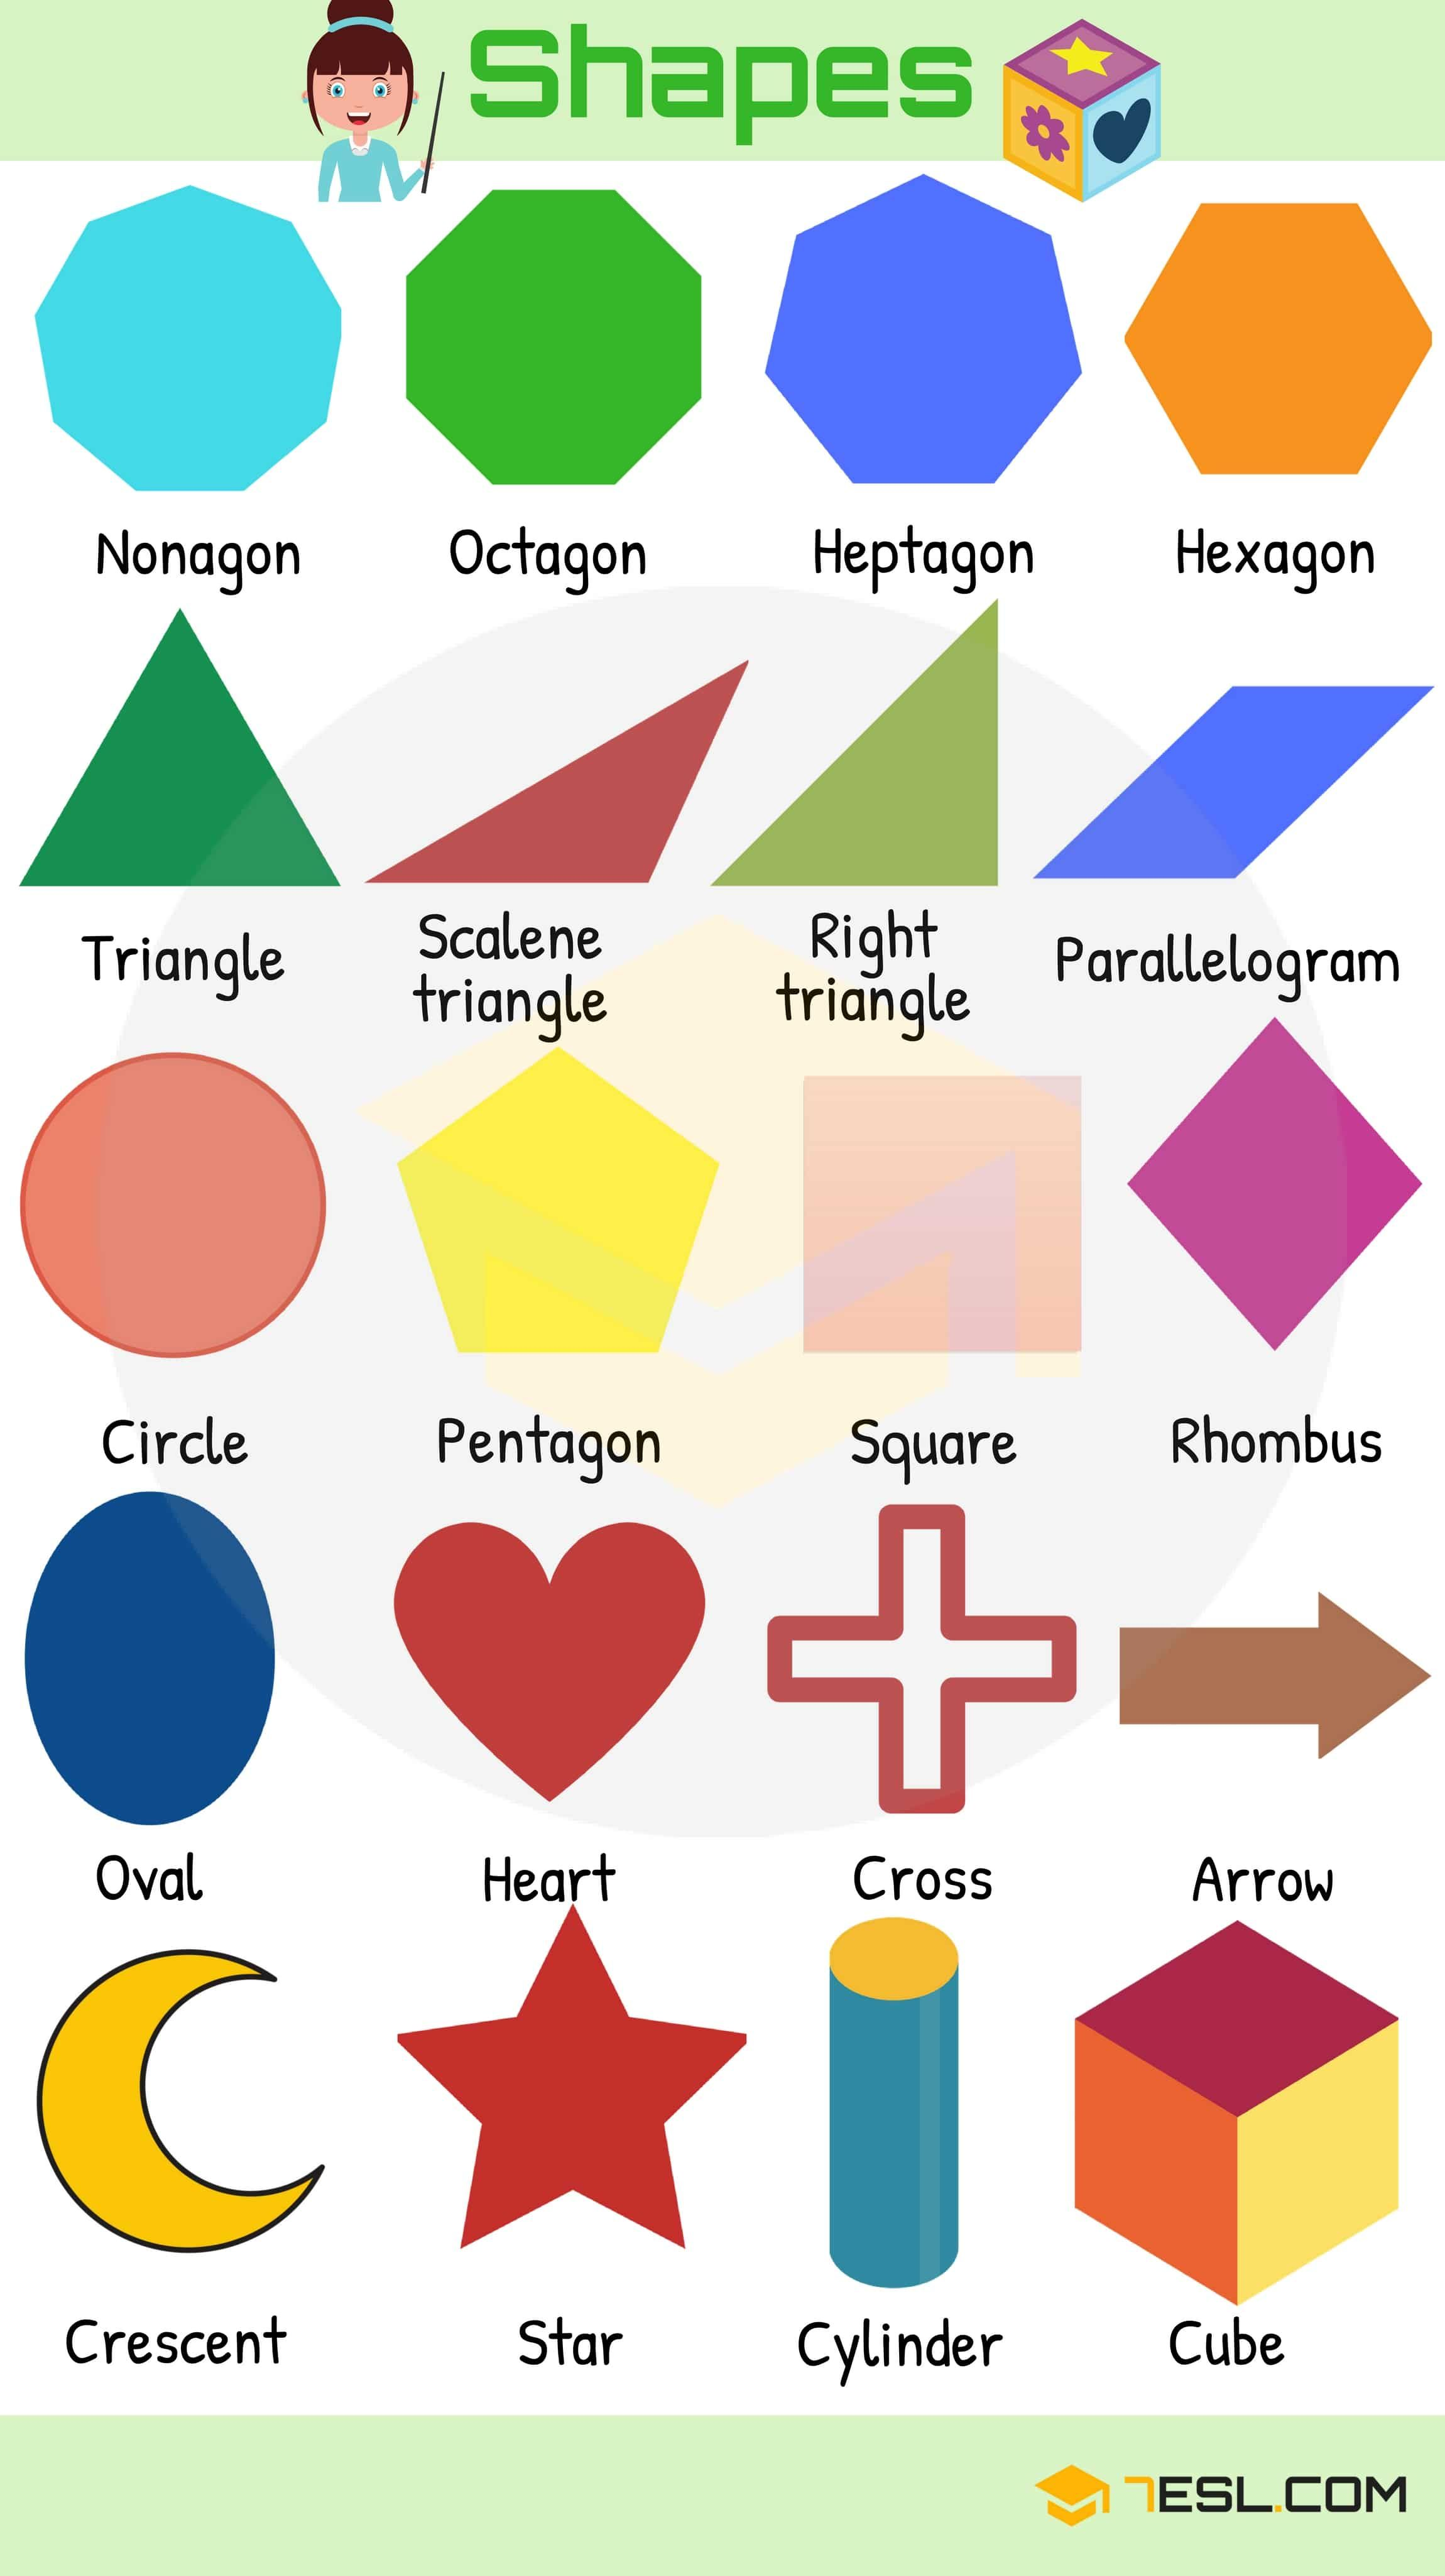 Shapes Names: List of Different Types of Geometric Shapes